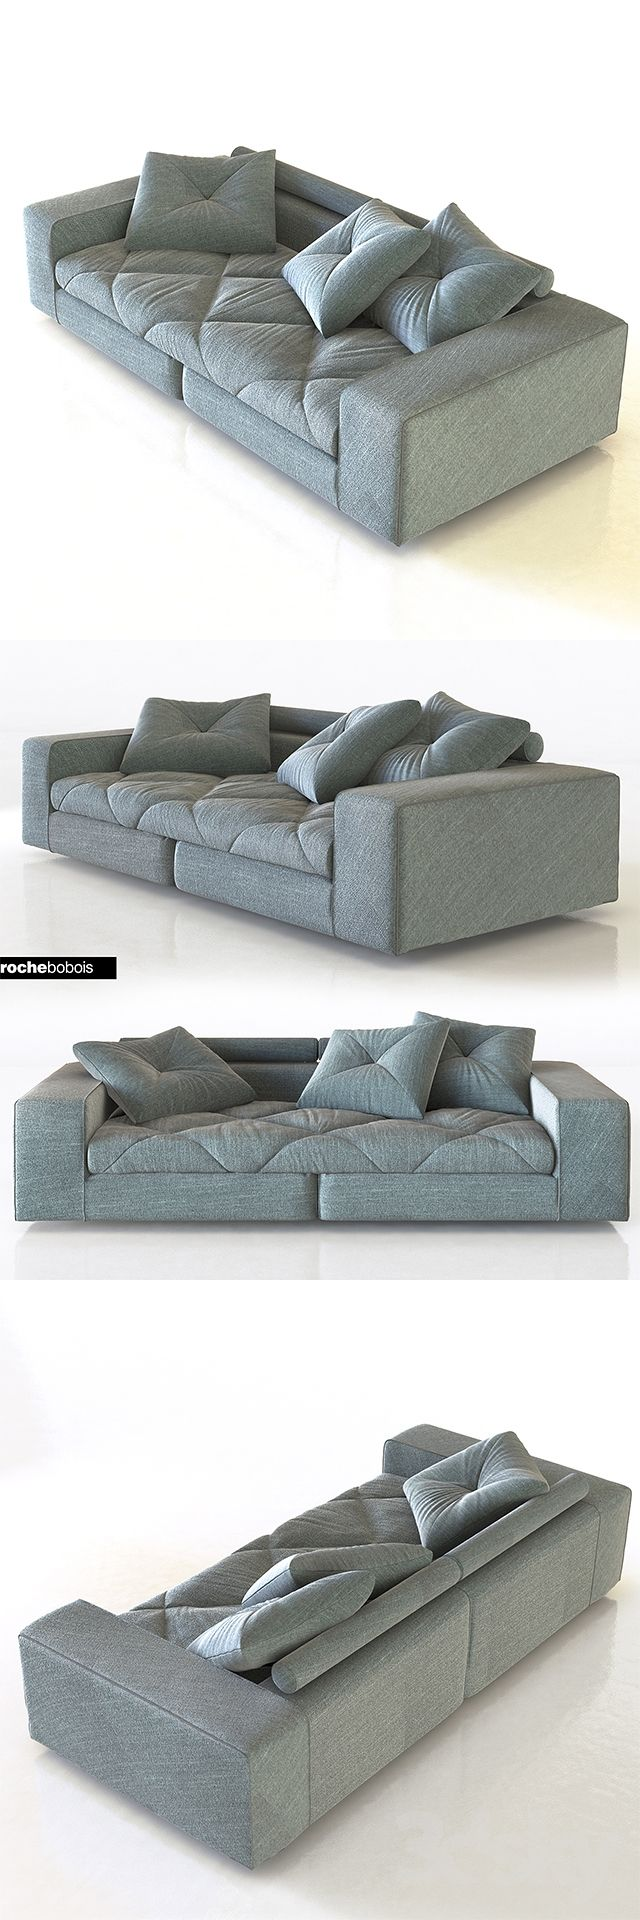 1000 Images About Furniture On Pinterest Oversized